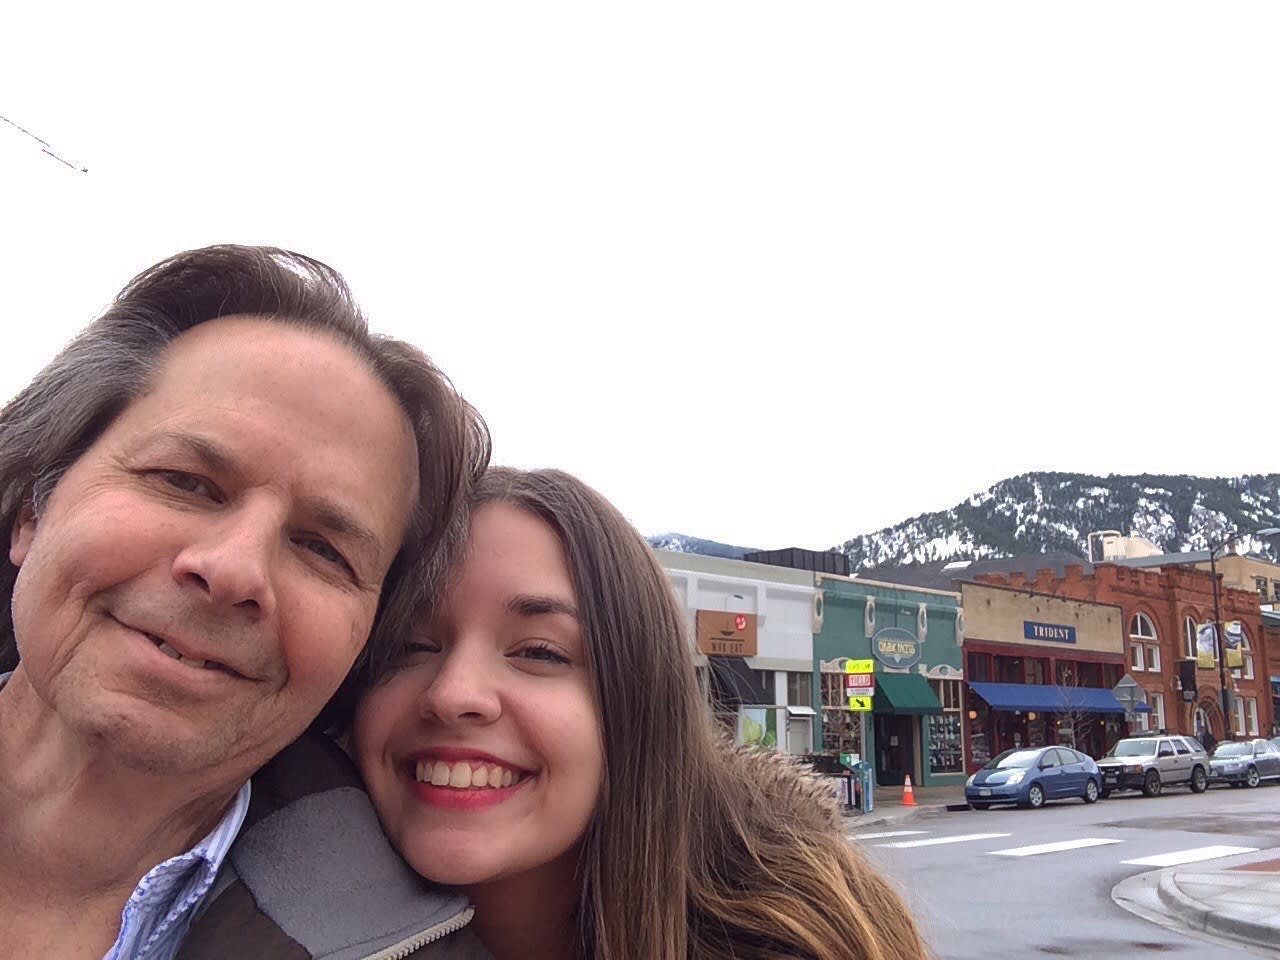 A young woman and her father stand for a selfie outside on Pearl Street in Boulder, Colorado. Snowy mountains are seen in the background.